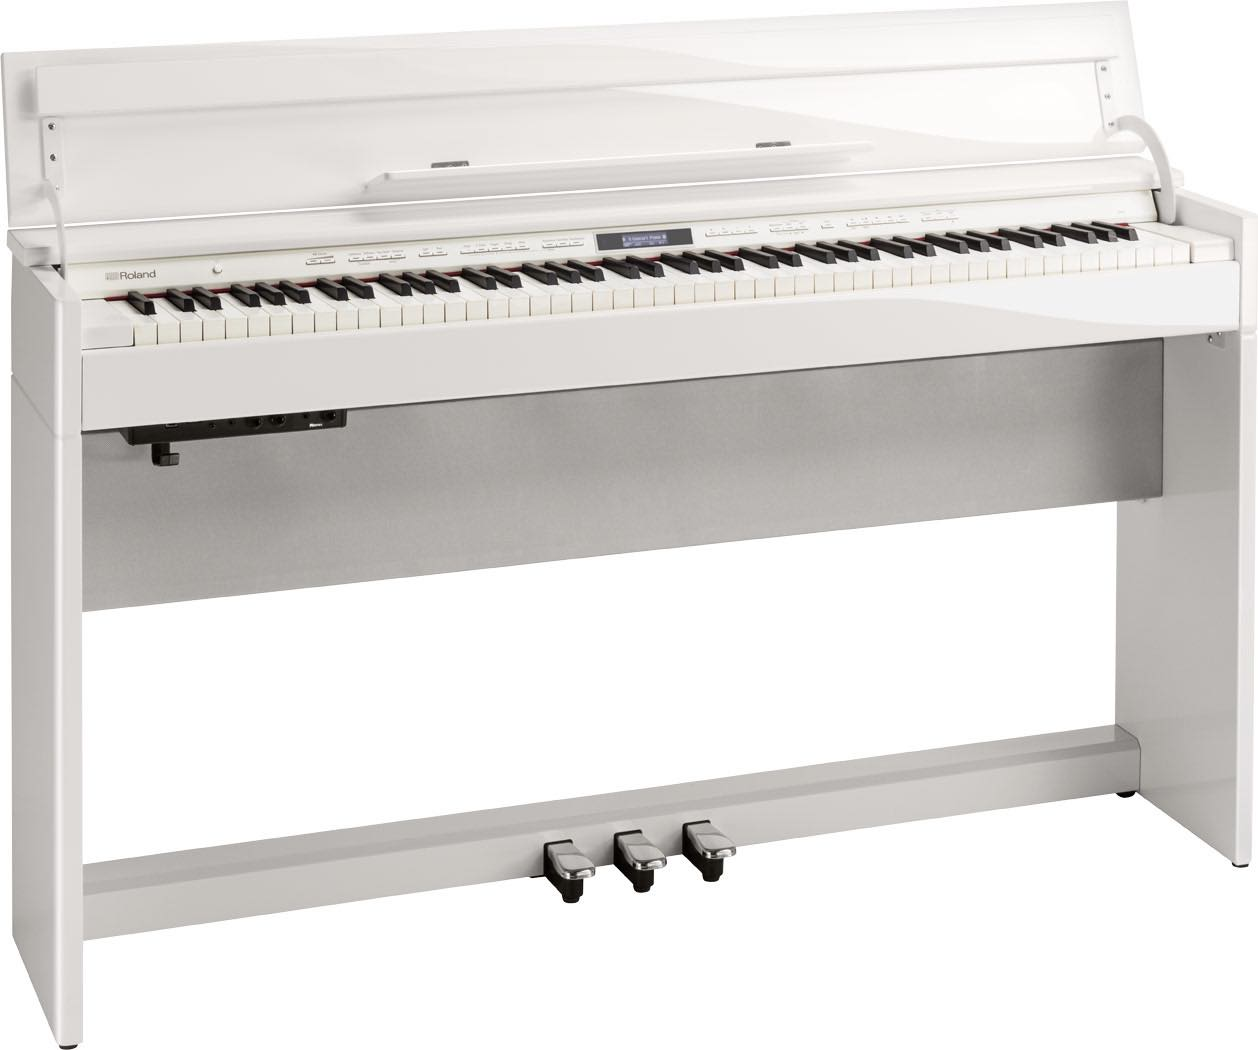 Hoogglans Witte Piano.Roland Dp603 Pw Hoogglans Wit Digitale Piano